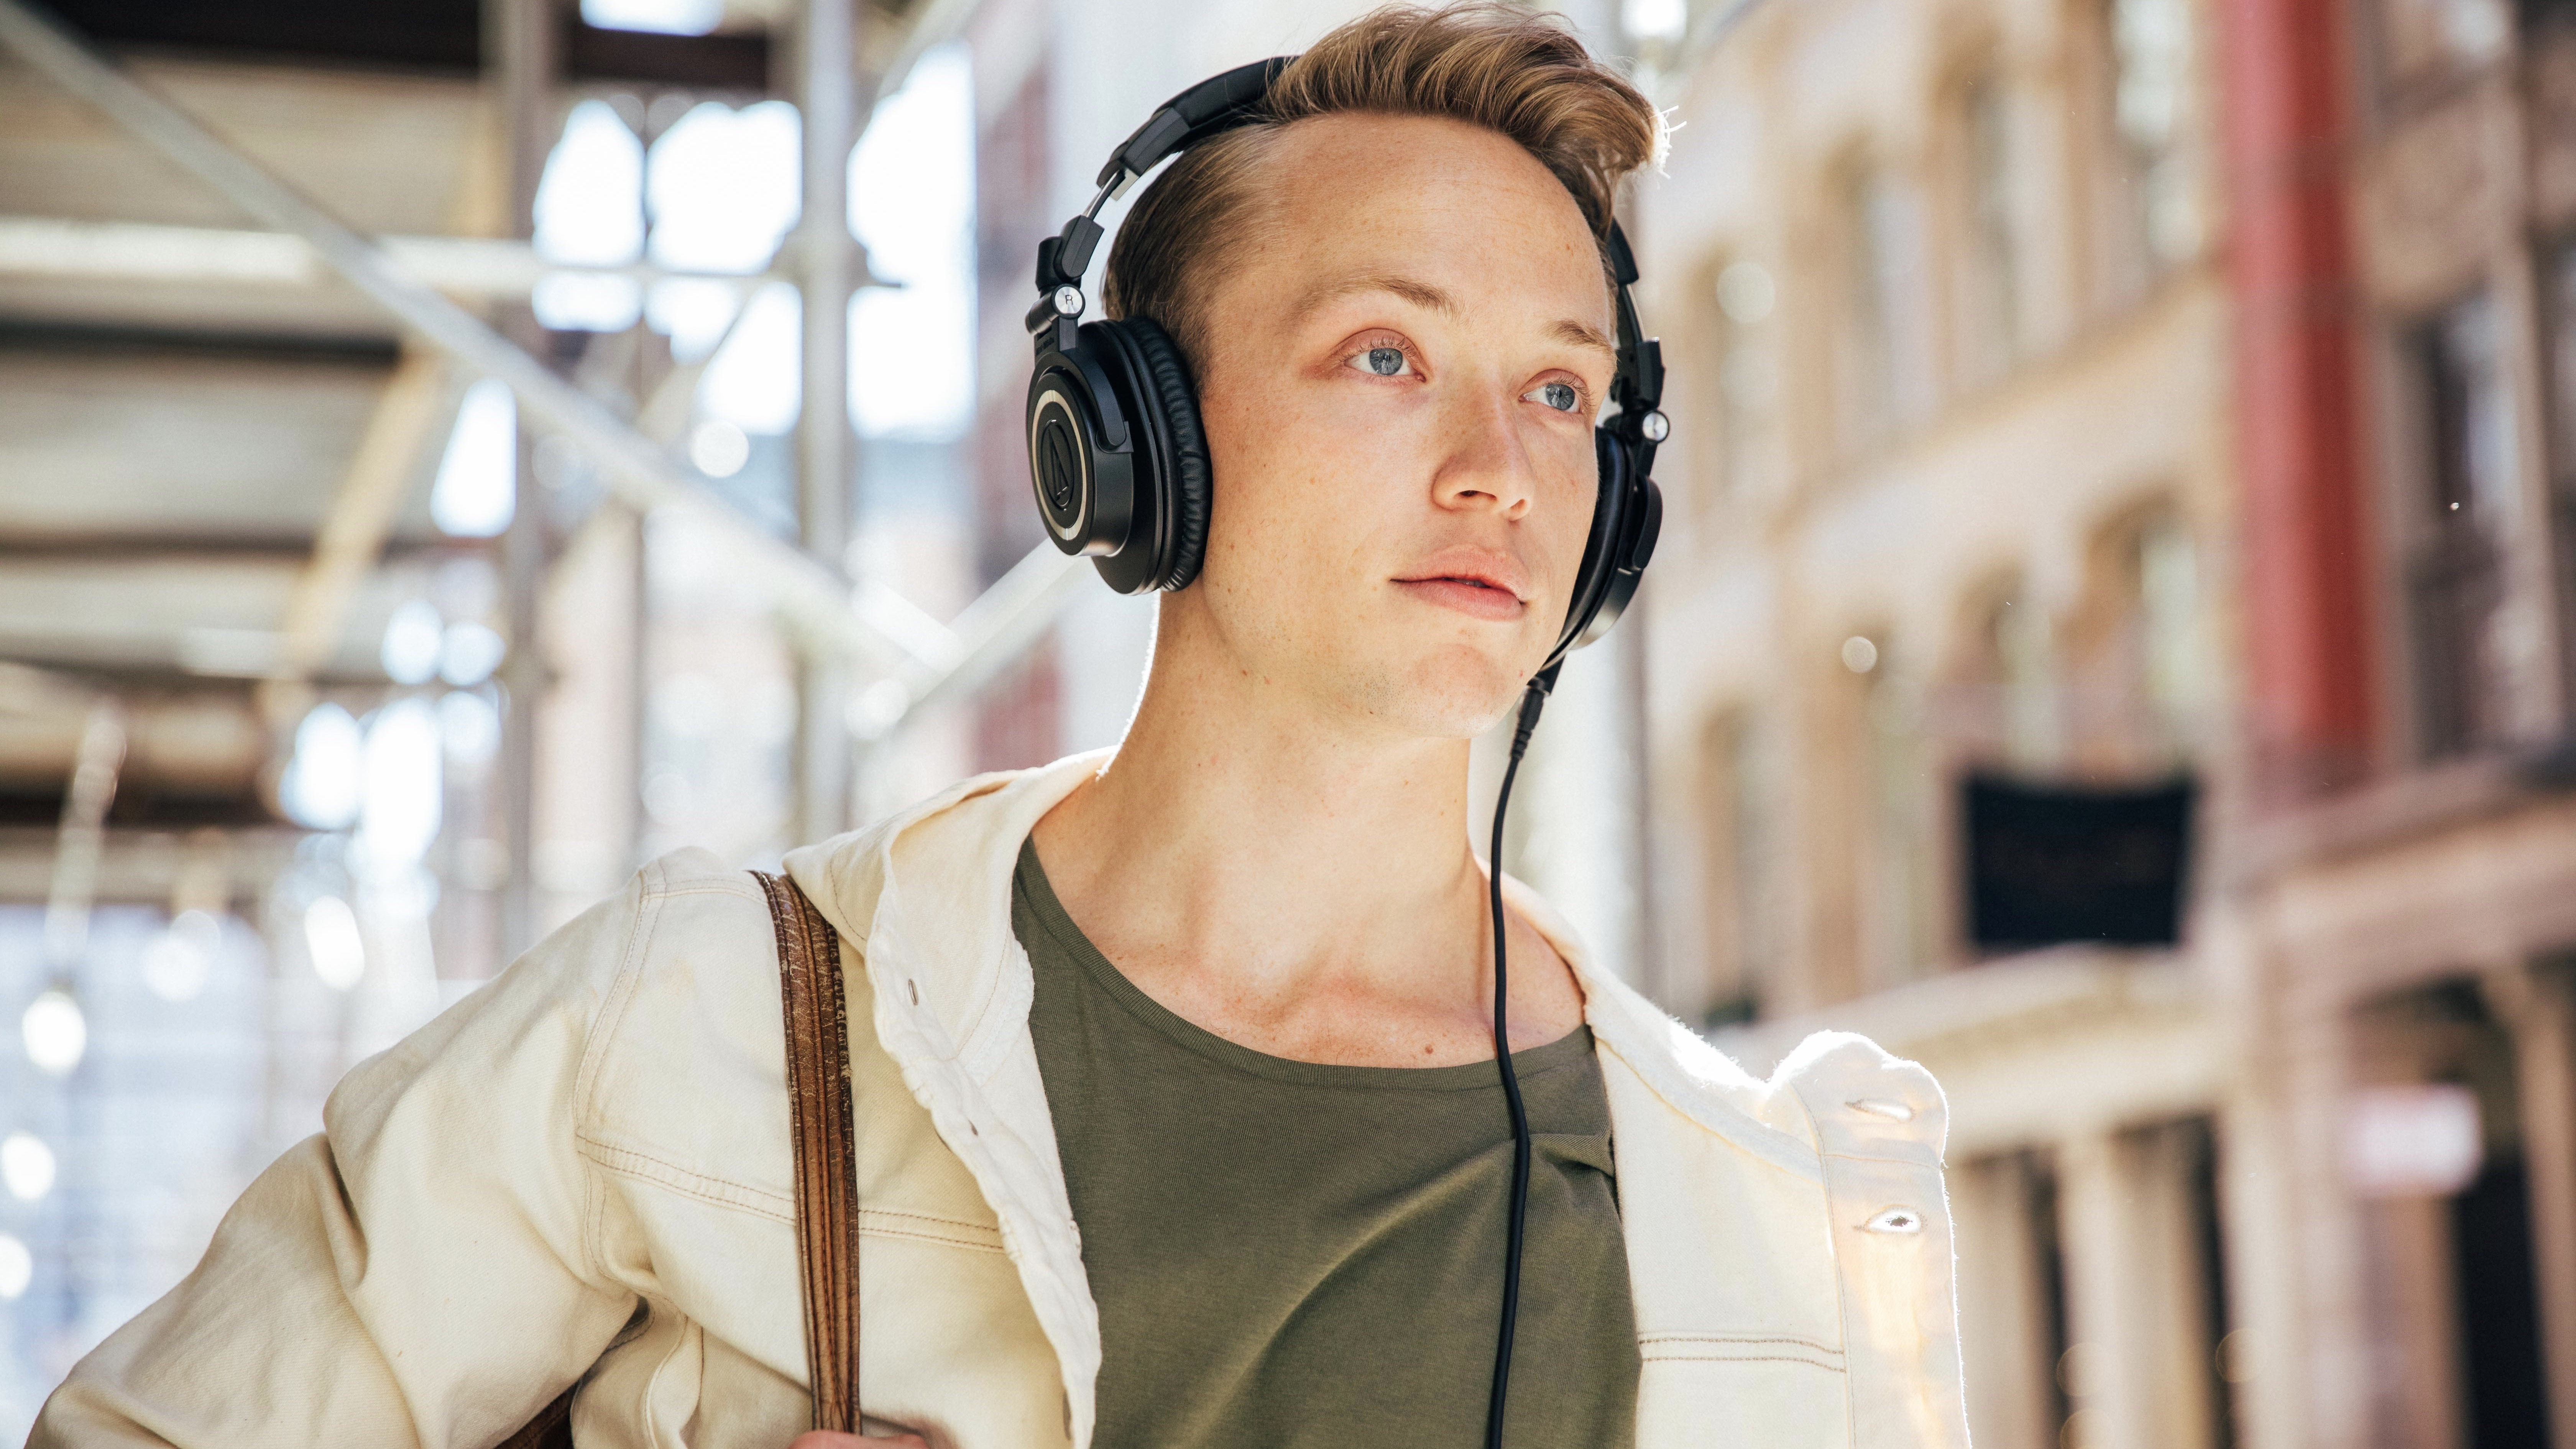 Best Wireless Headphones 2020 The Best Over Ear Bluetooth Headphones And Some Best Buds T3